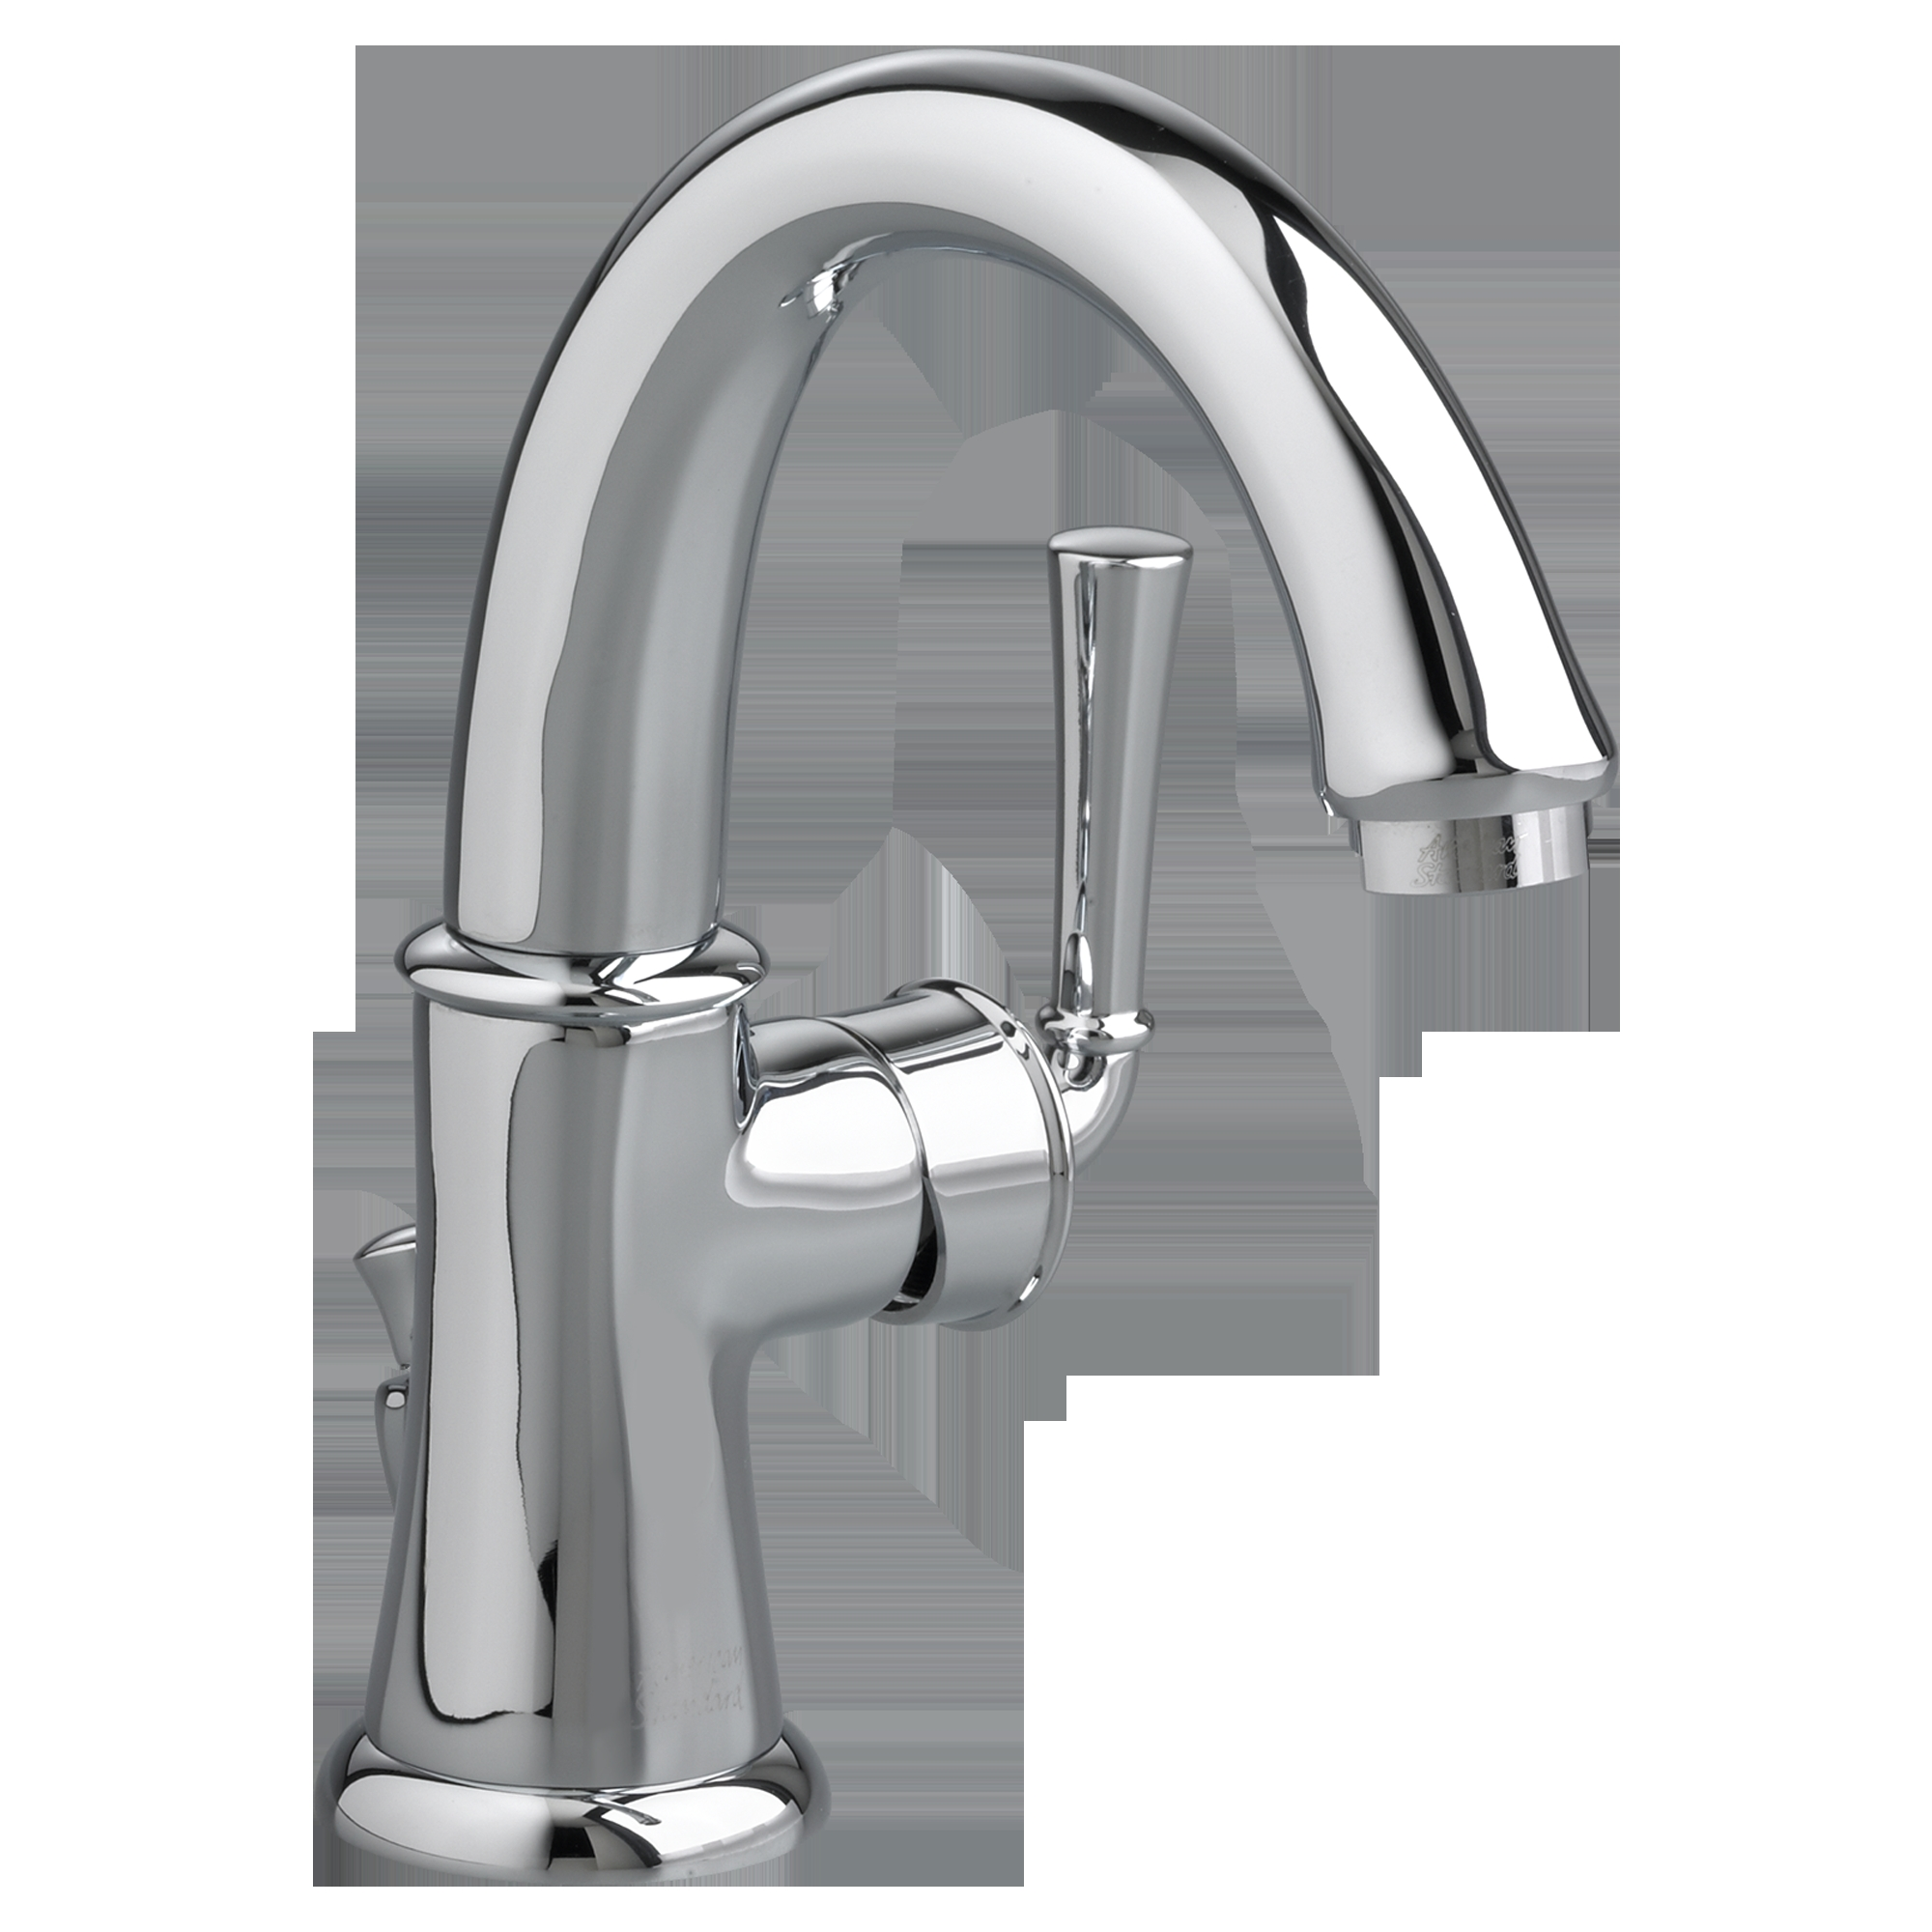 Ideas, grohe classic bathroom faucet grohe classic bathroom faucet bath shower fabulous bathroom faucets for modern bathroom 2000 x 2000  .